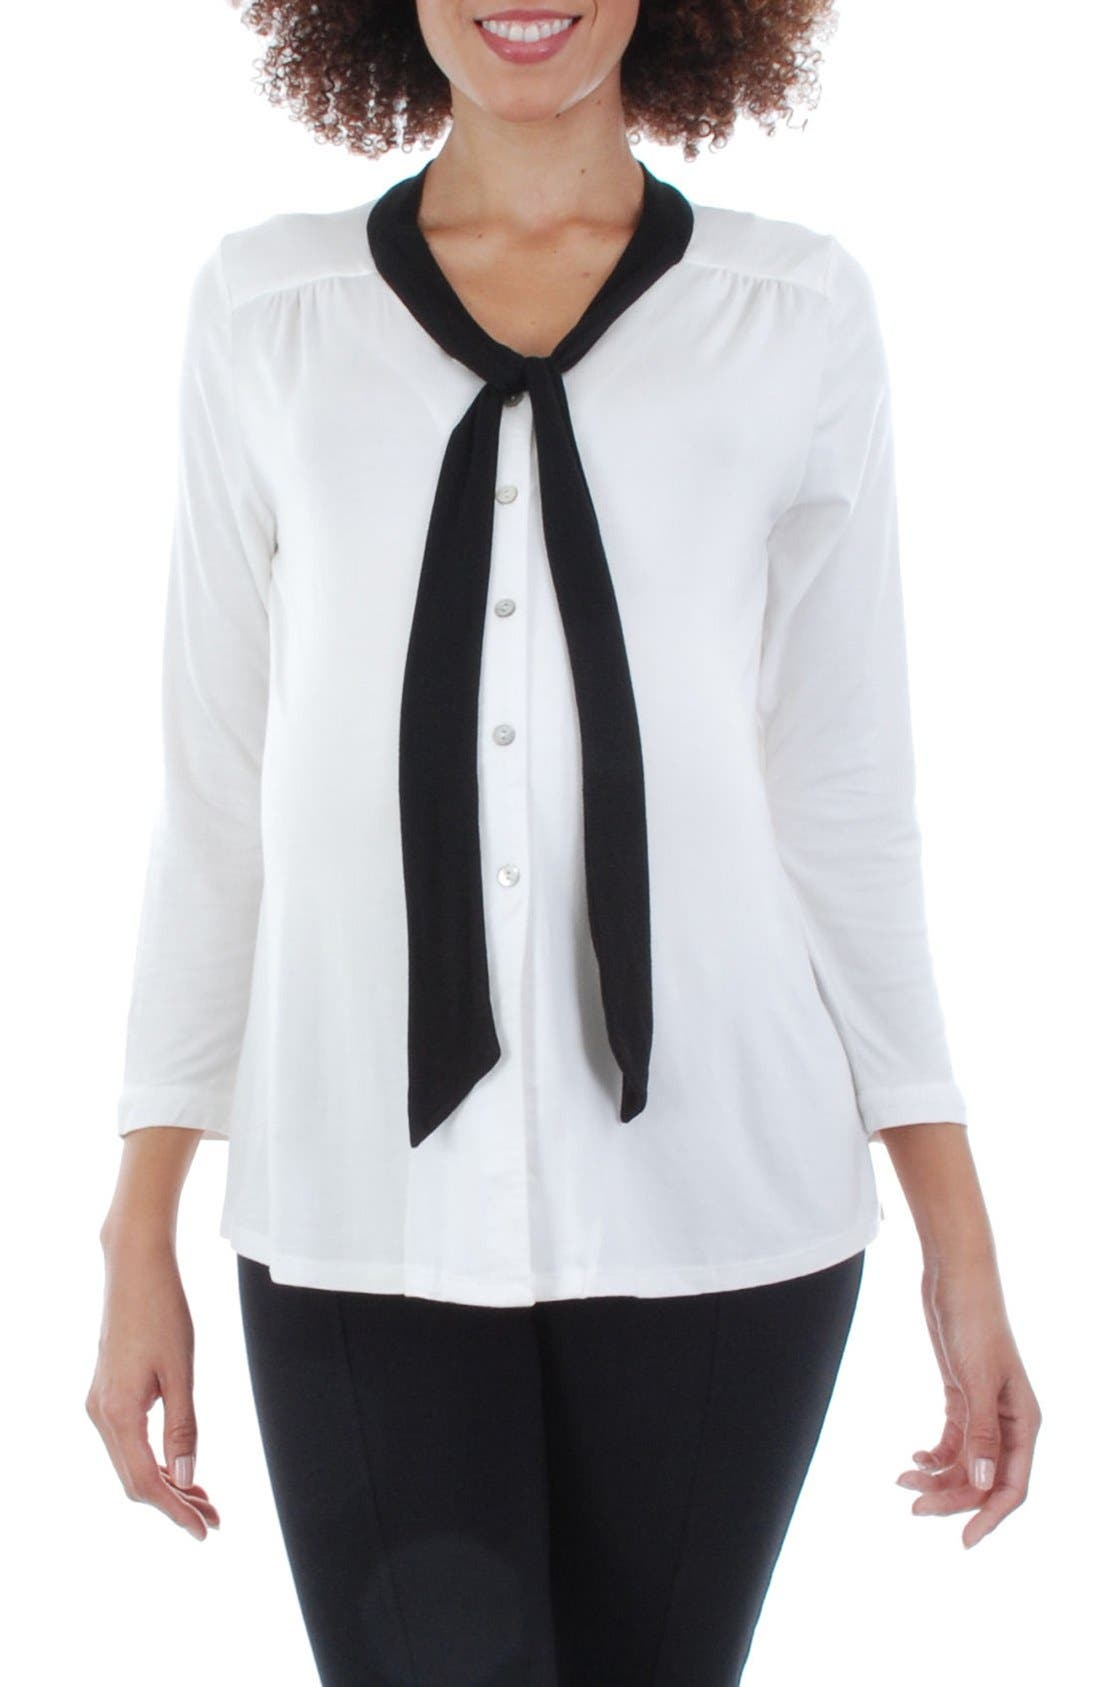 EVERLY GREY Kitty Tie Neck Maternity Top